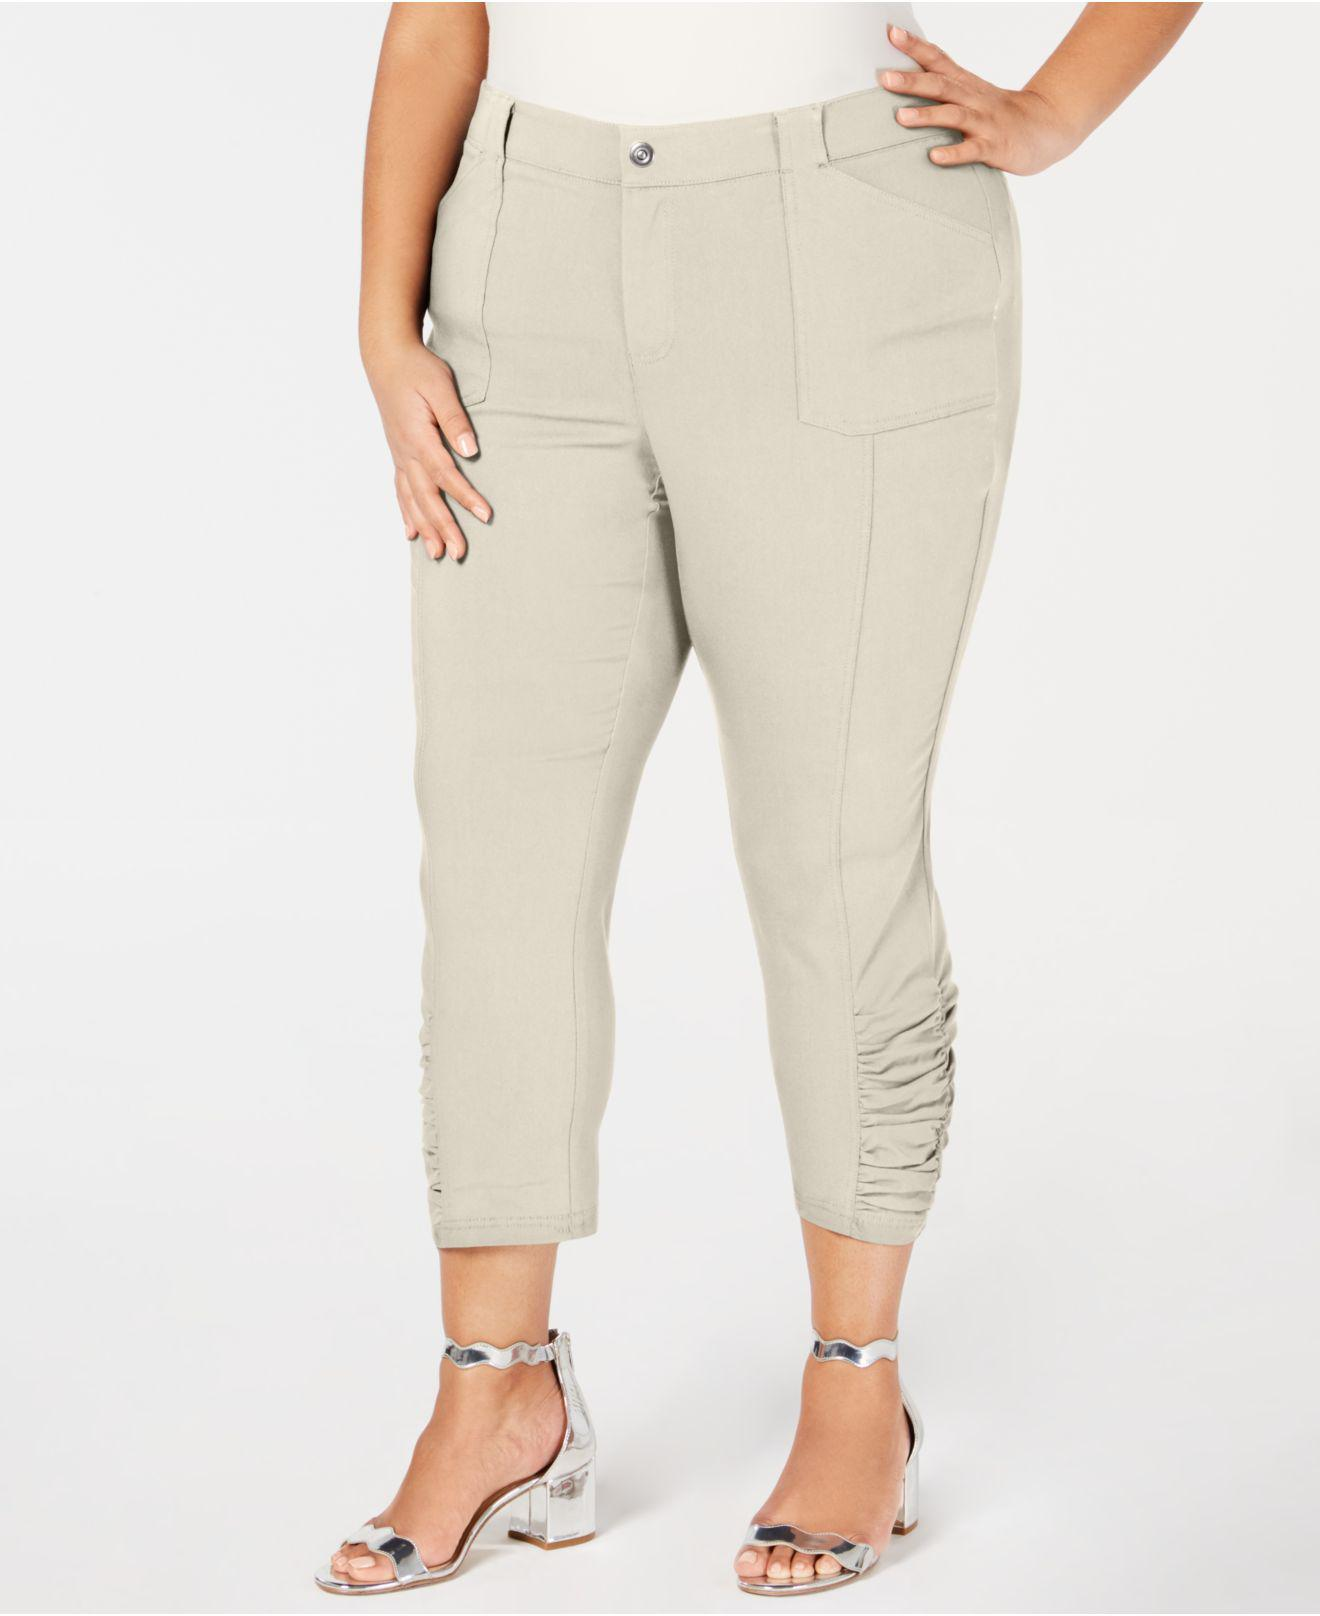 e849c2afb1d INC International Concepts. Women s Natural I.n.c. Plus Size Ruched-hem  Cropped Pants ...